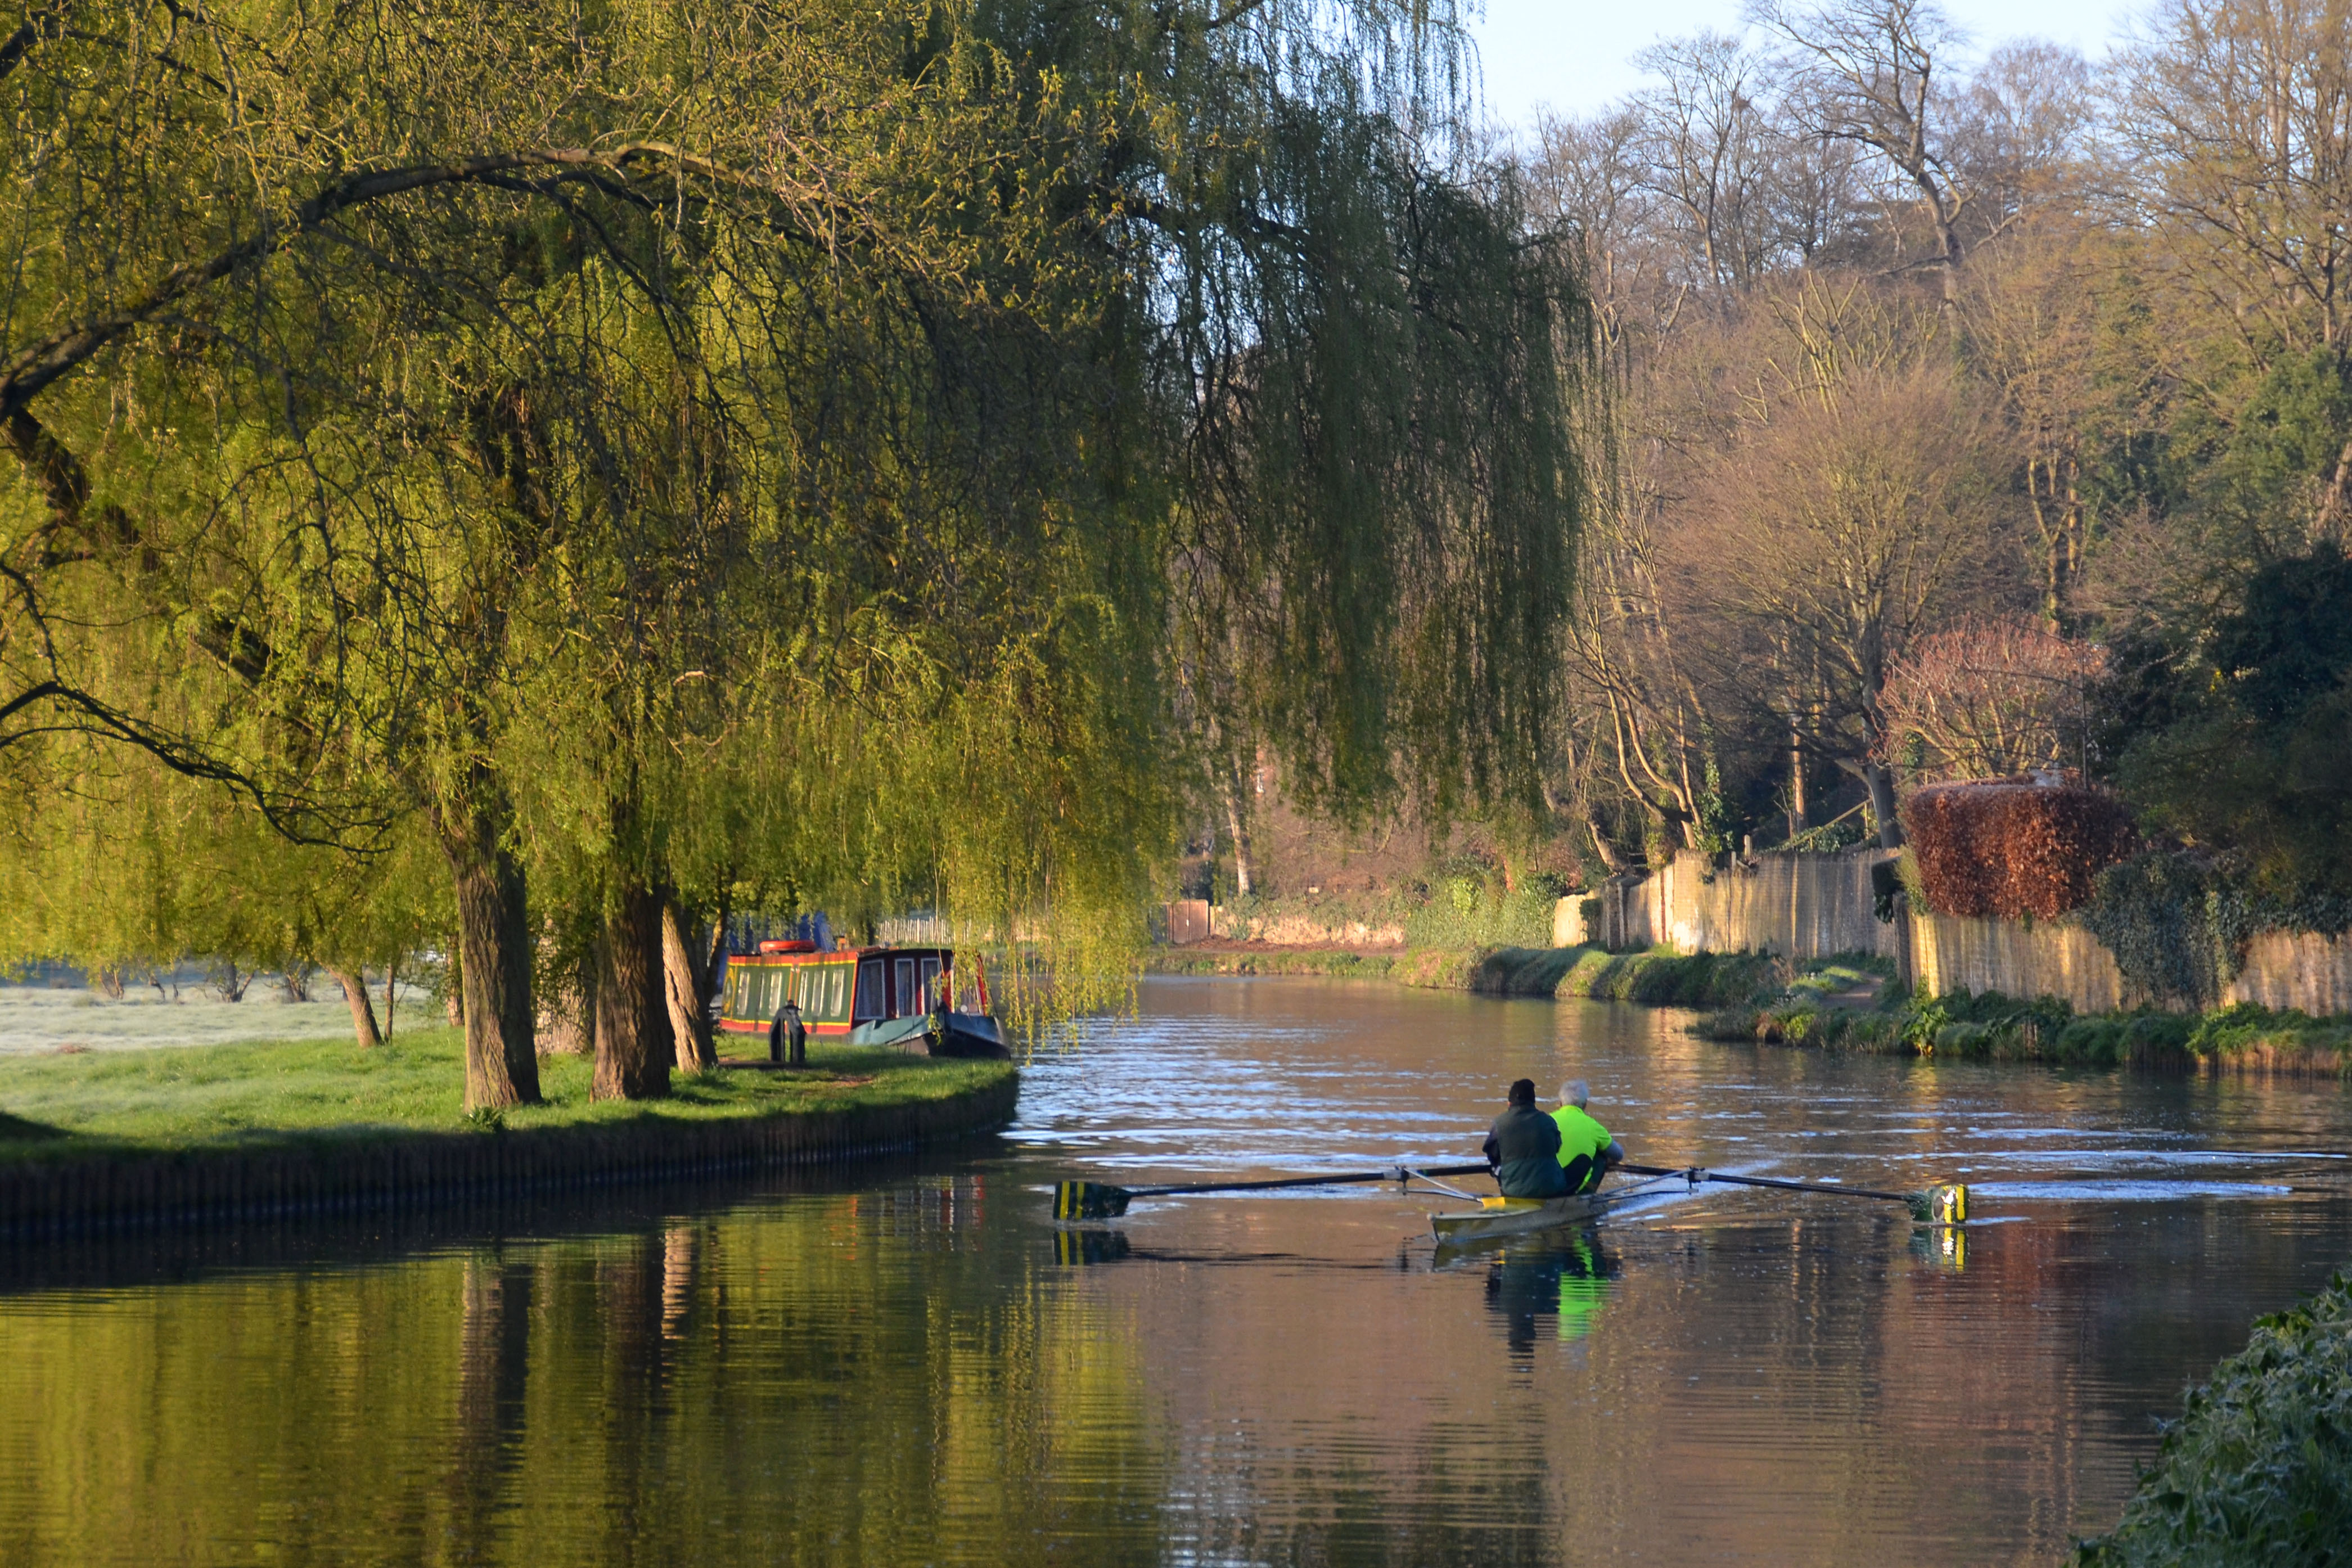 Rowing on the Wey Navigation at Millmead, Guildford